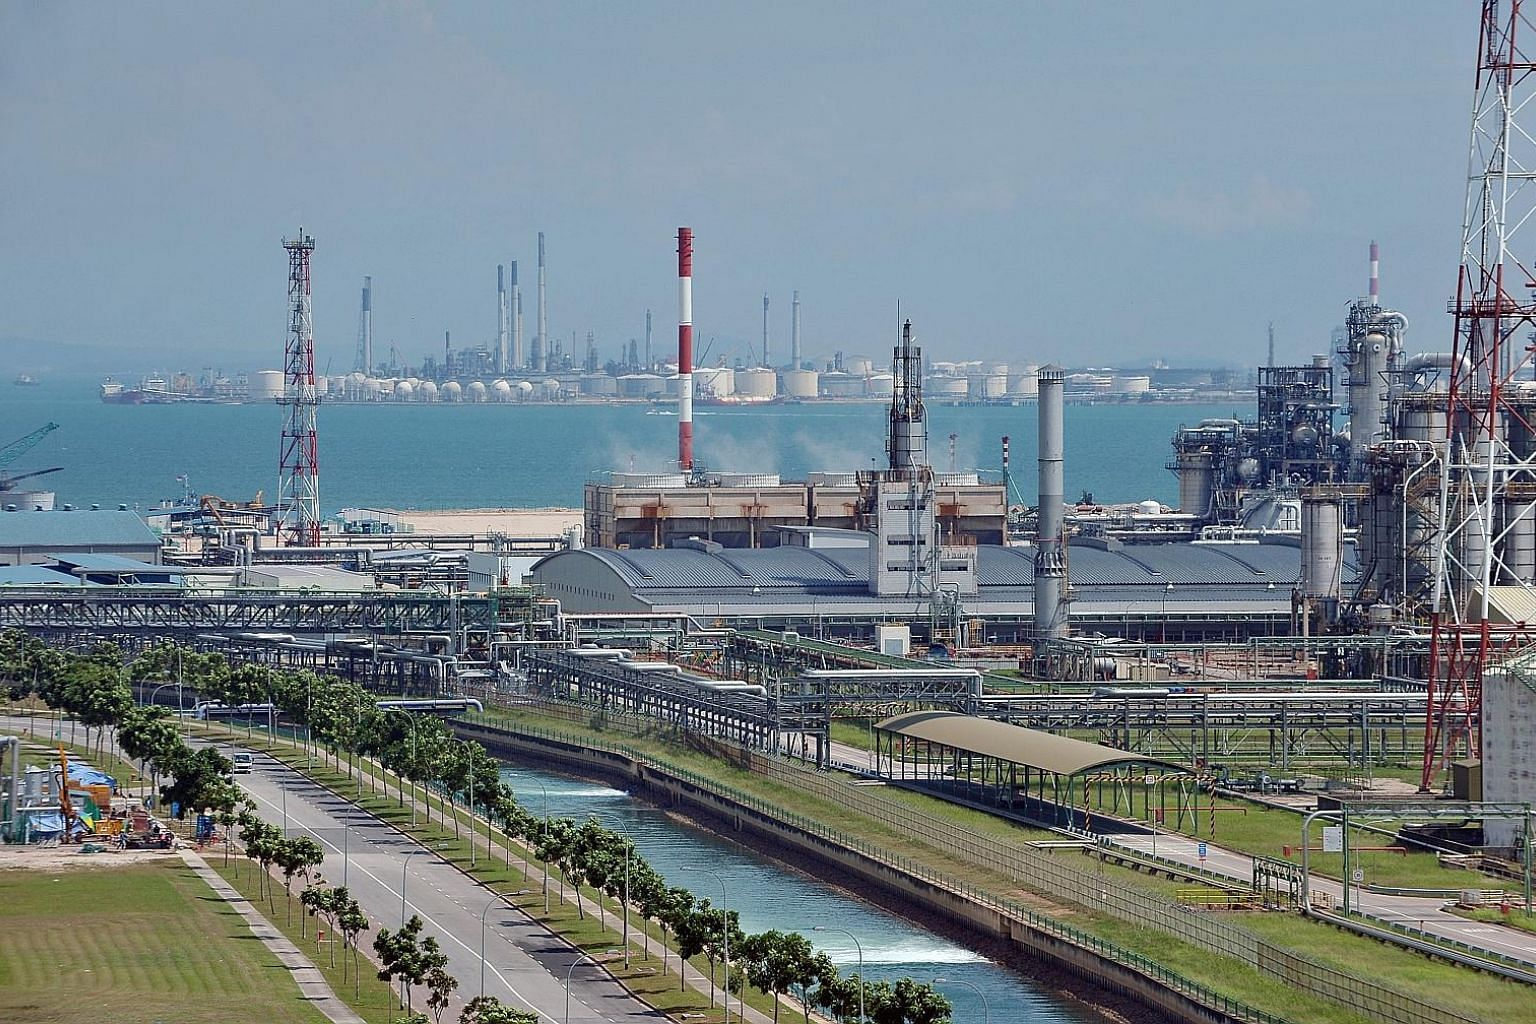 Petrochemical refineries at Jurong Island. The industrial sector is expected to take most of the weight of a carbon price if it is implemented.